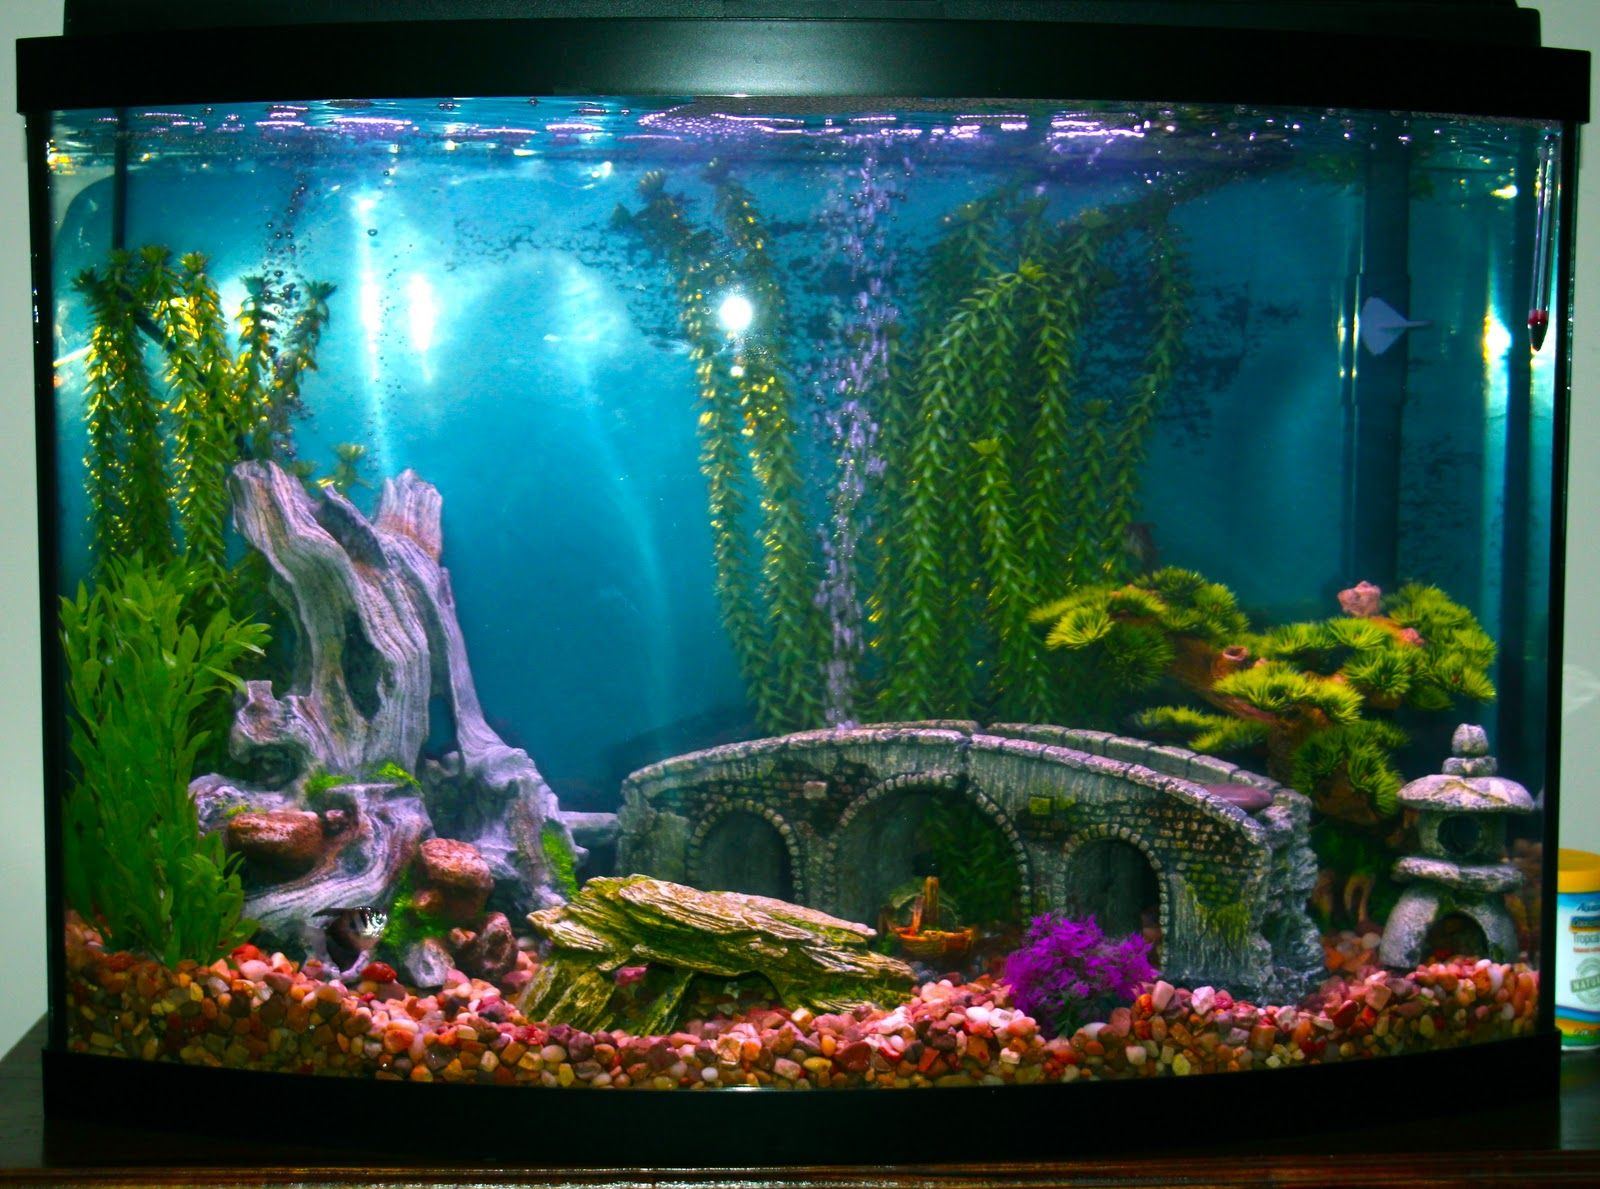 fish tank decorations google search fish tanks pinterest fish tanks fish tank themes. Black Bedroom Furniture Sets. Home Design Ideas